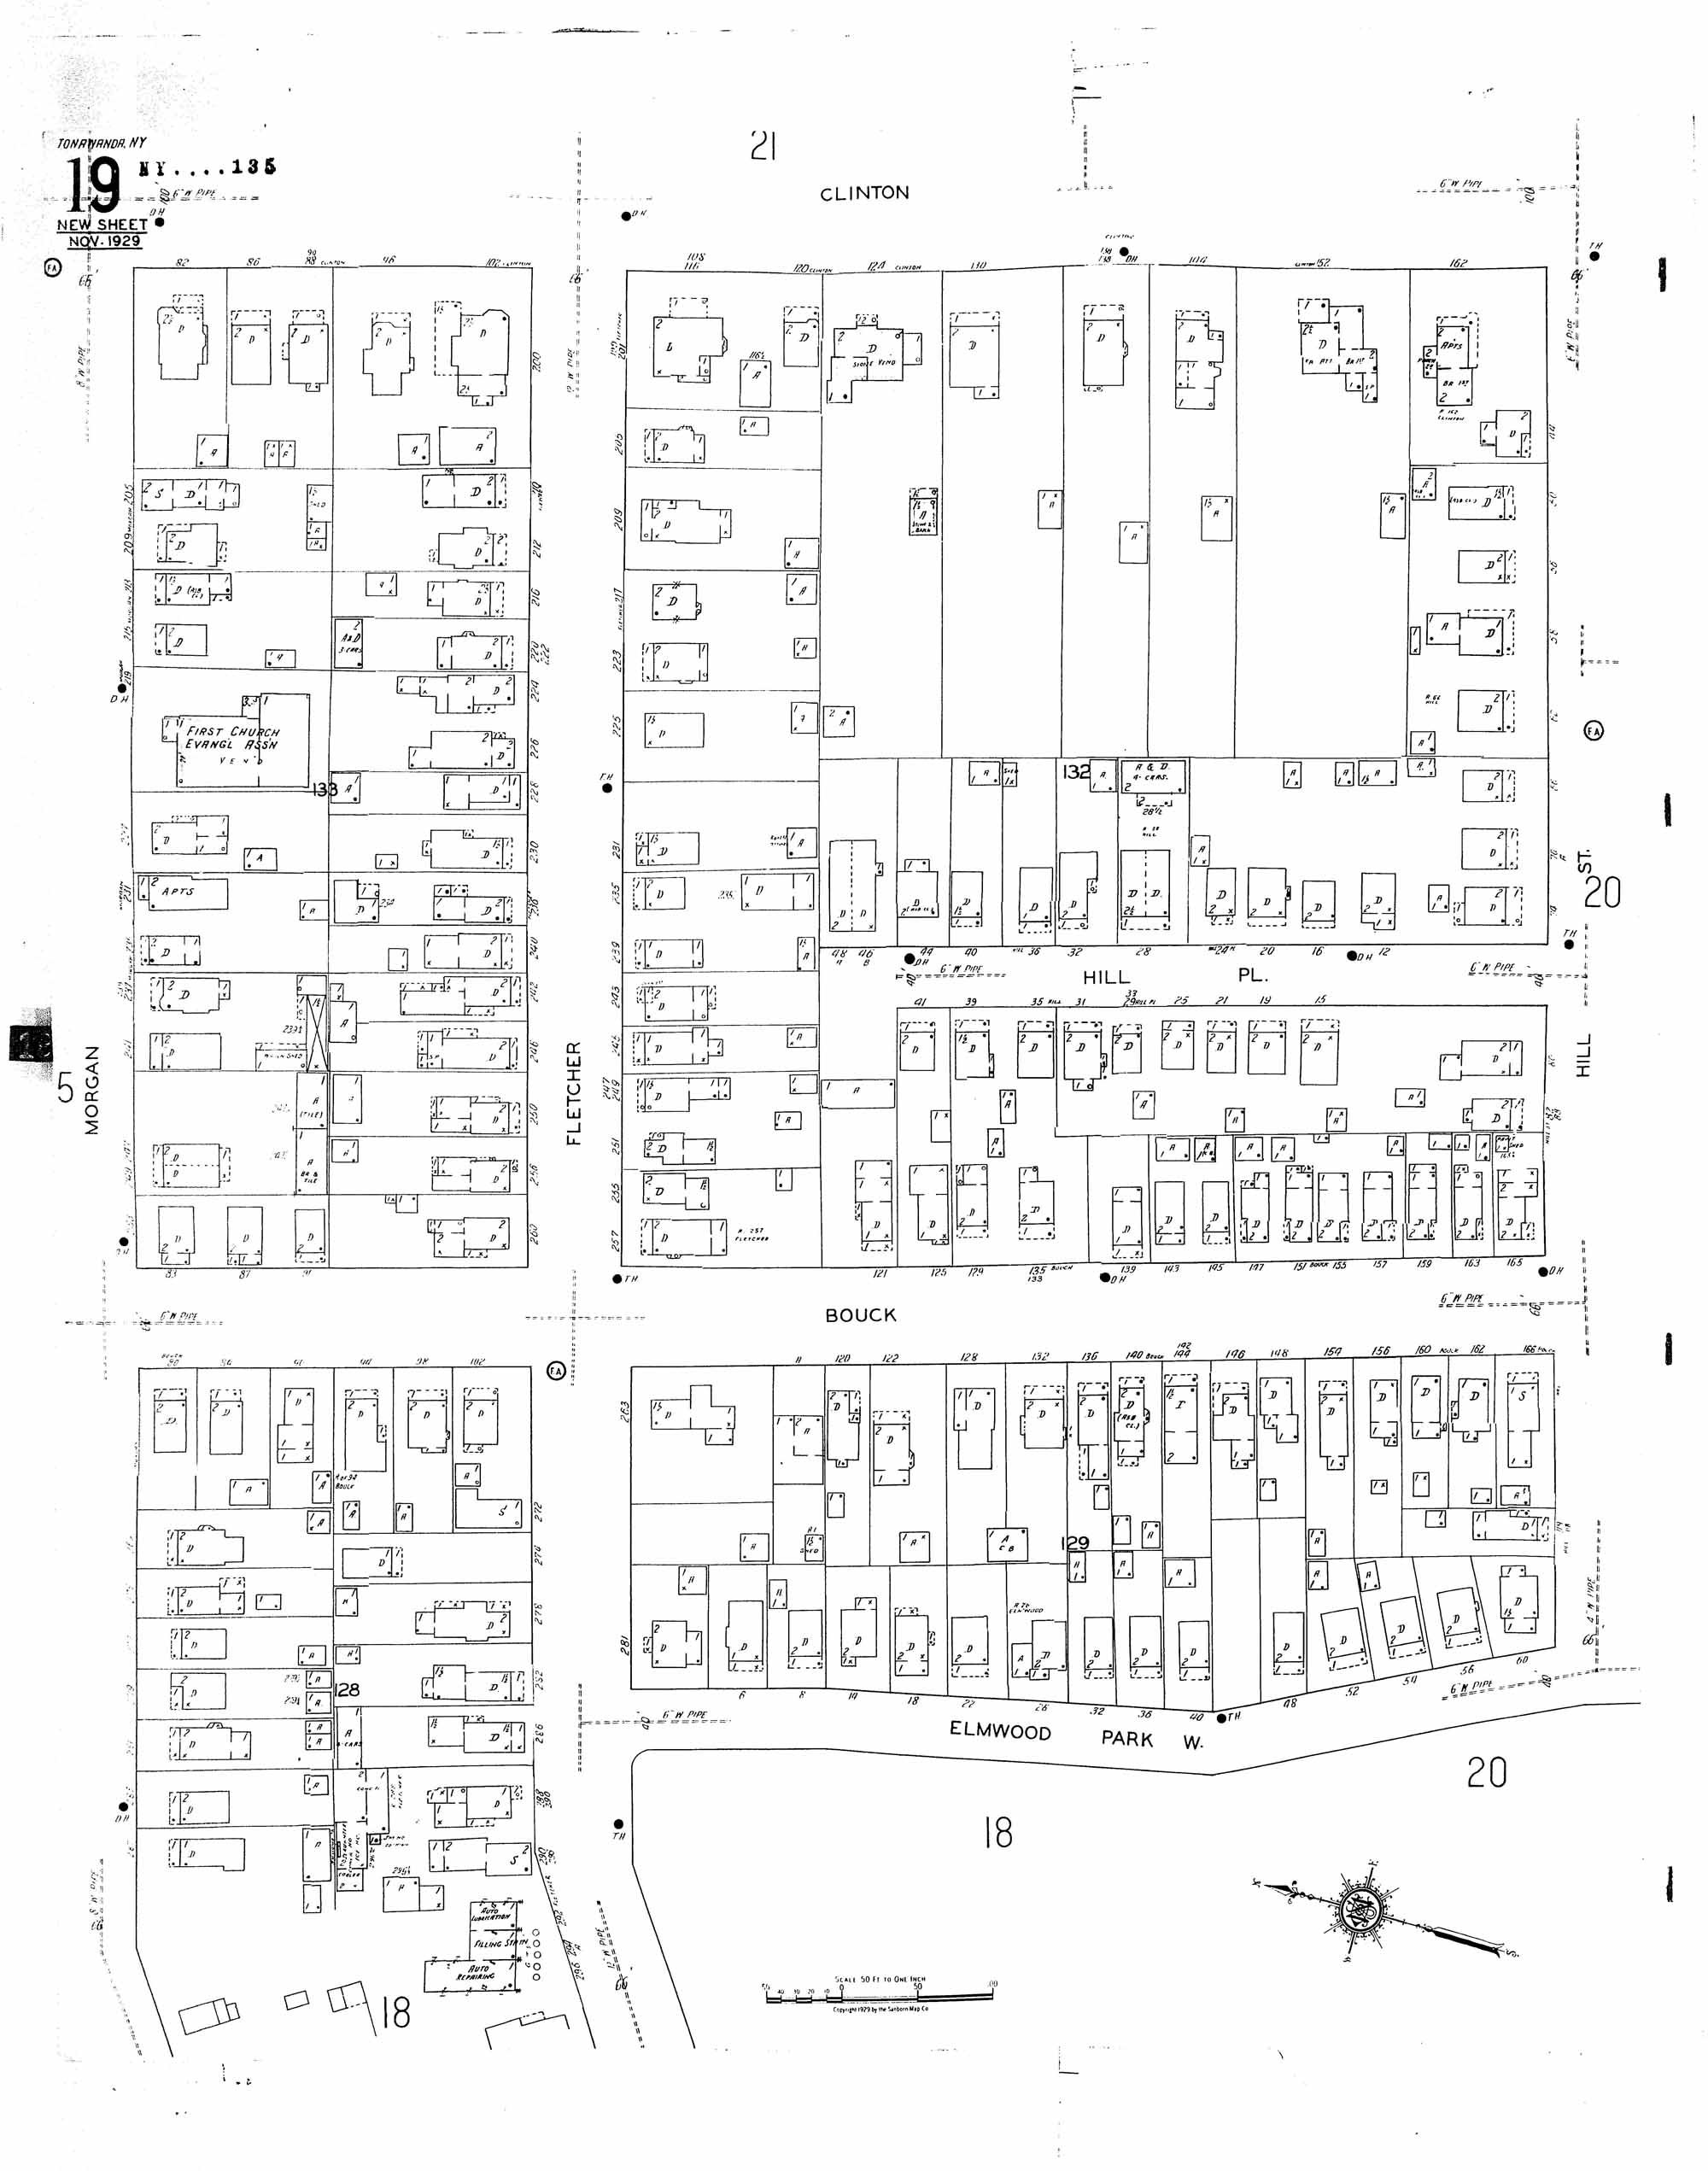 Tonawanda+1910-Jan.+1951,+Sheet+19.jpg